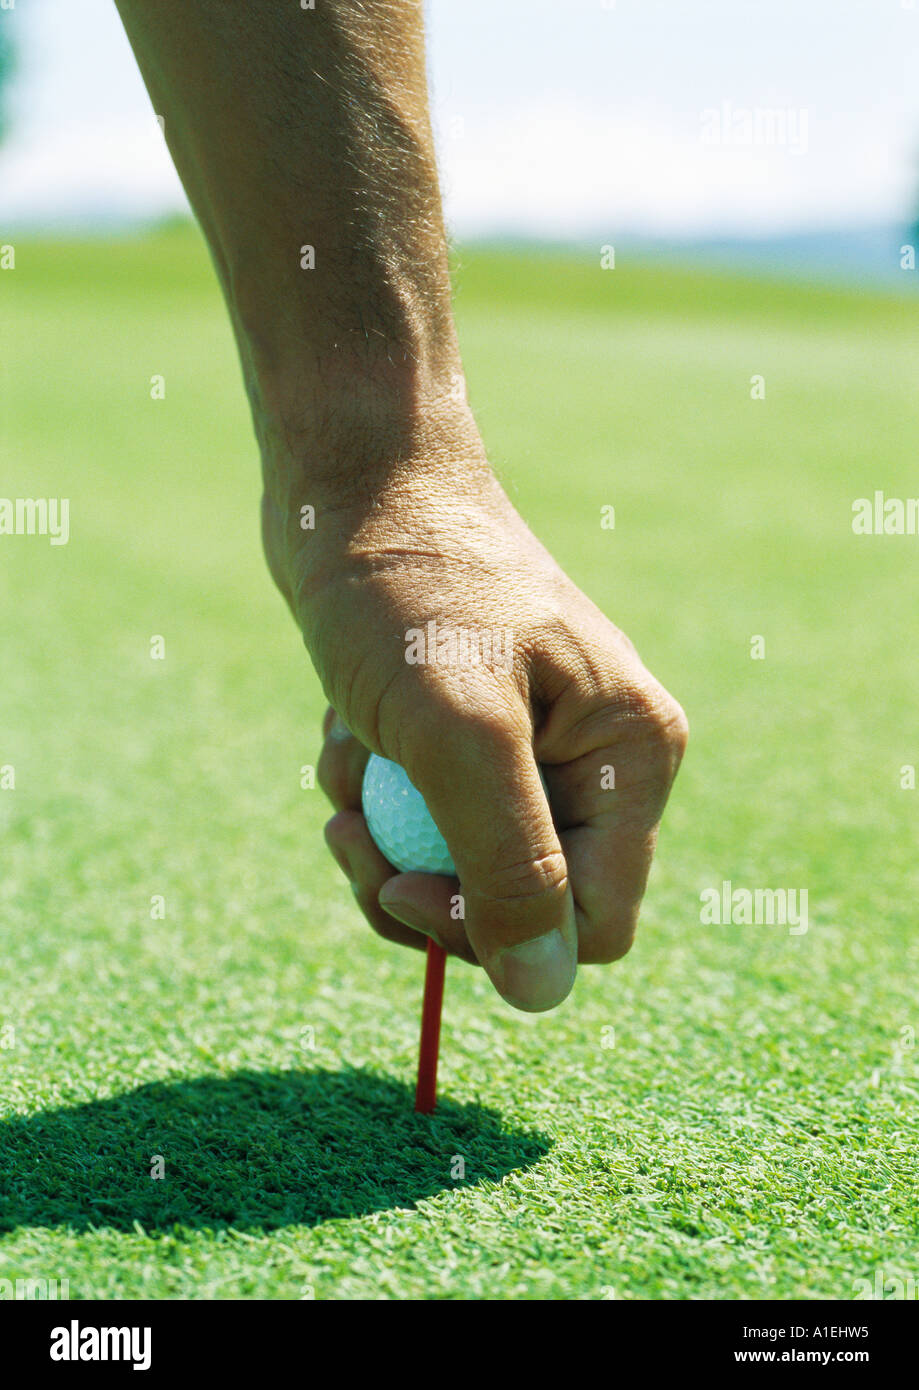 Man placing golf ball on tee - Stock Image